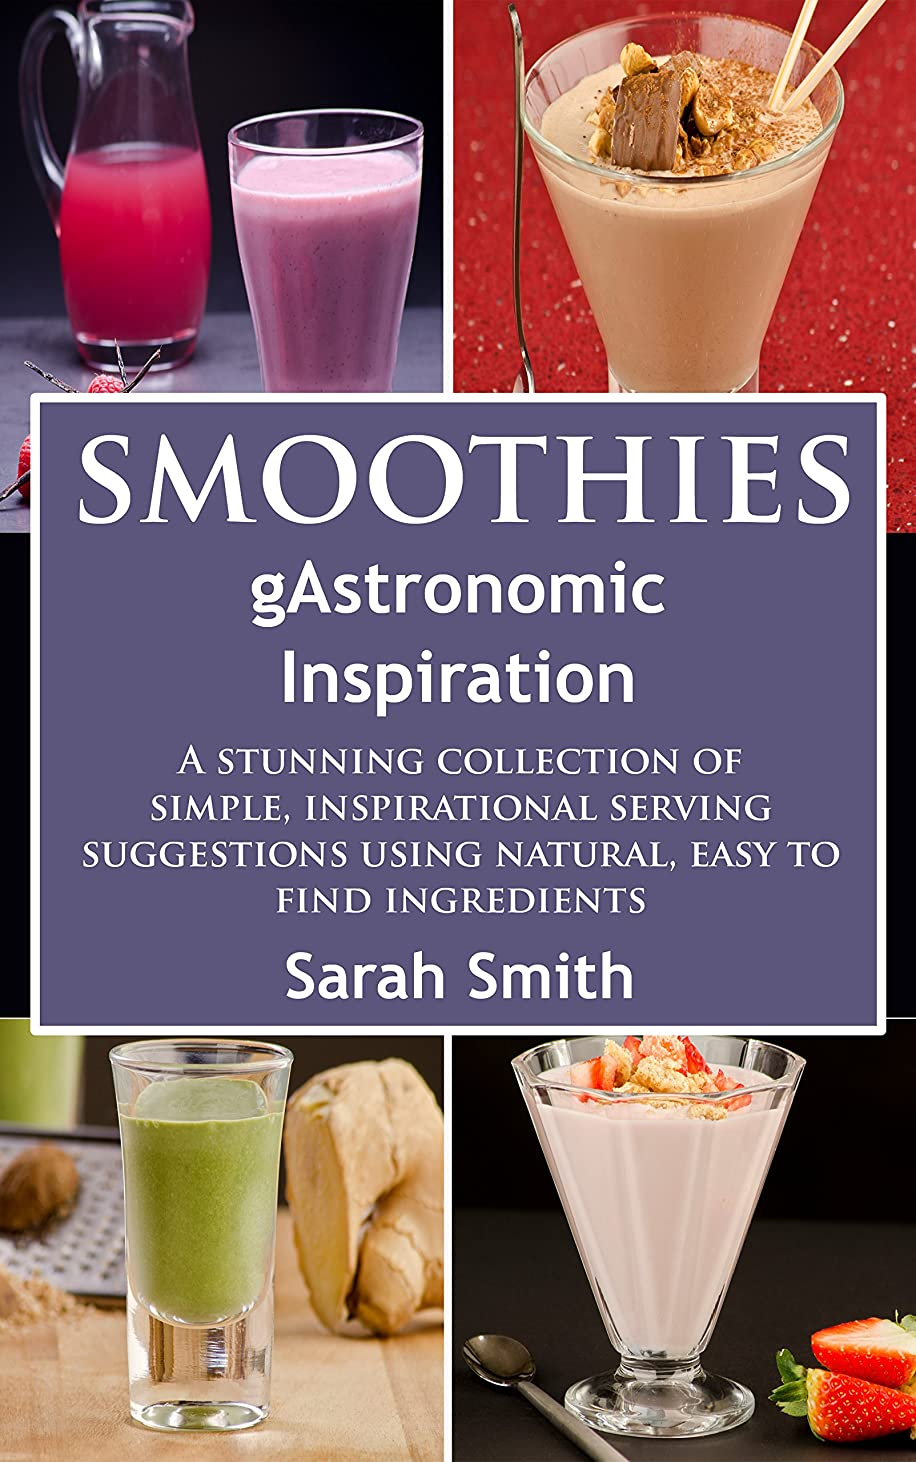 Smoothies:A Stunning Collection of Simple, Inspirational Serving Suggestions Using Natural, Easy To Find Ingredients. (Smoothies for Beginners, Smoothies ... Loss, Smoothie Recipes) (English Edition)